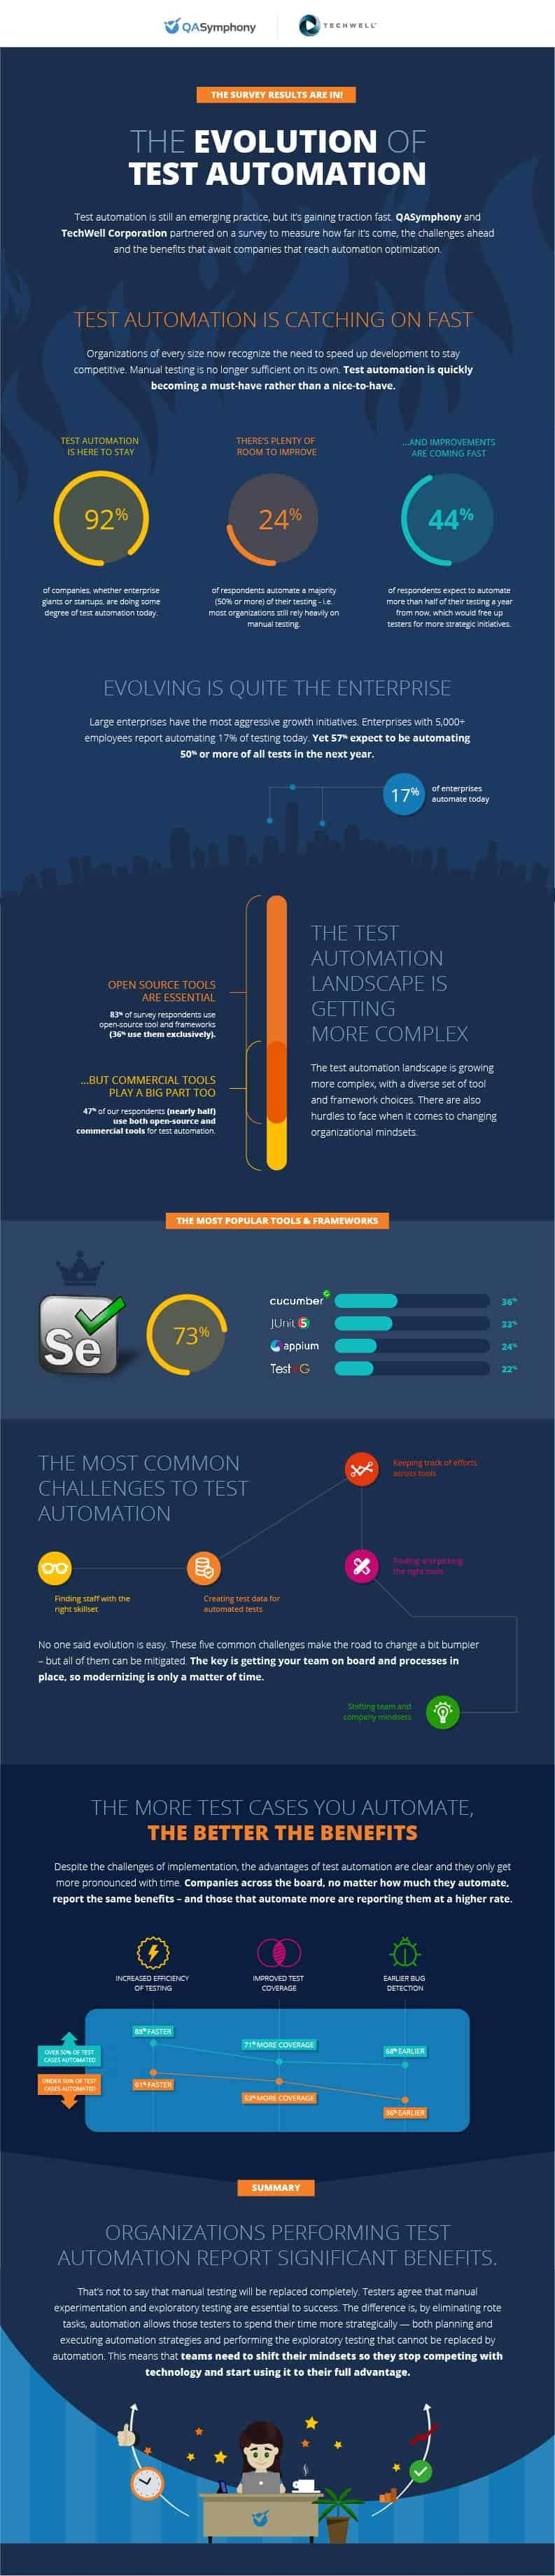 test automation trends infographic